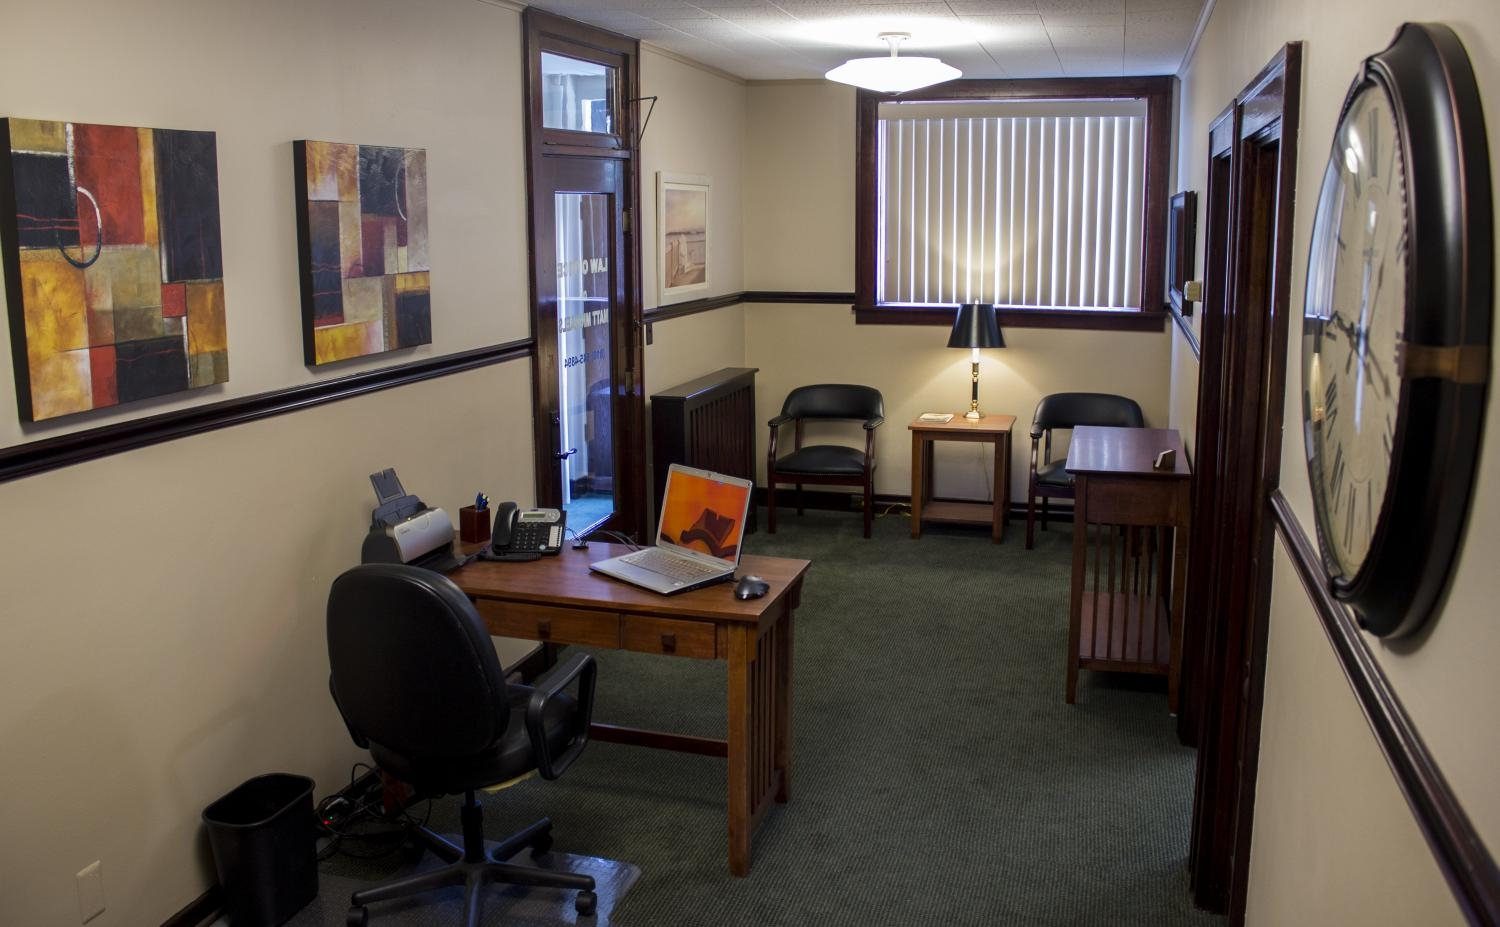 Photo, attorney's office interior, reception area